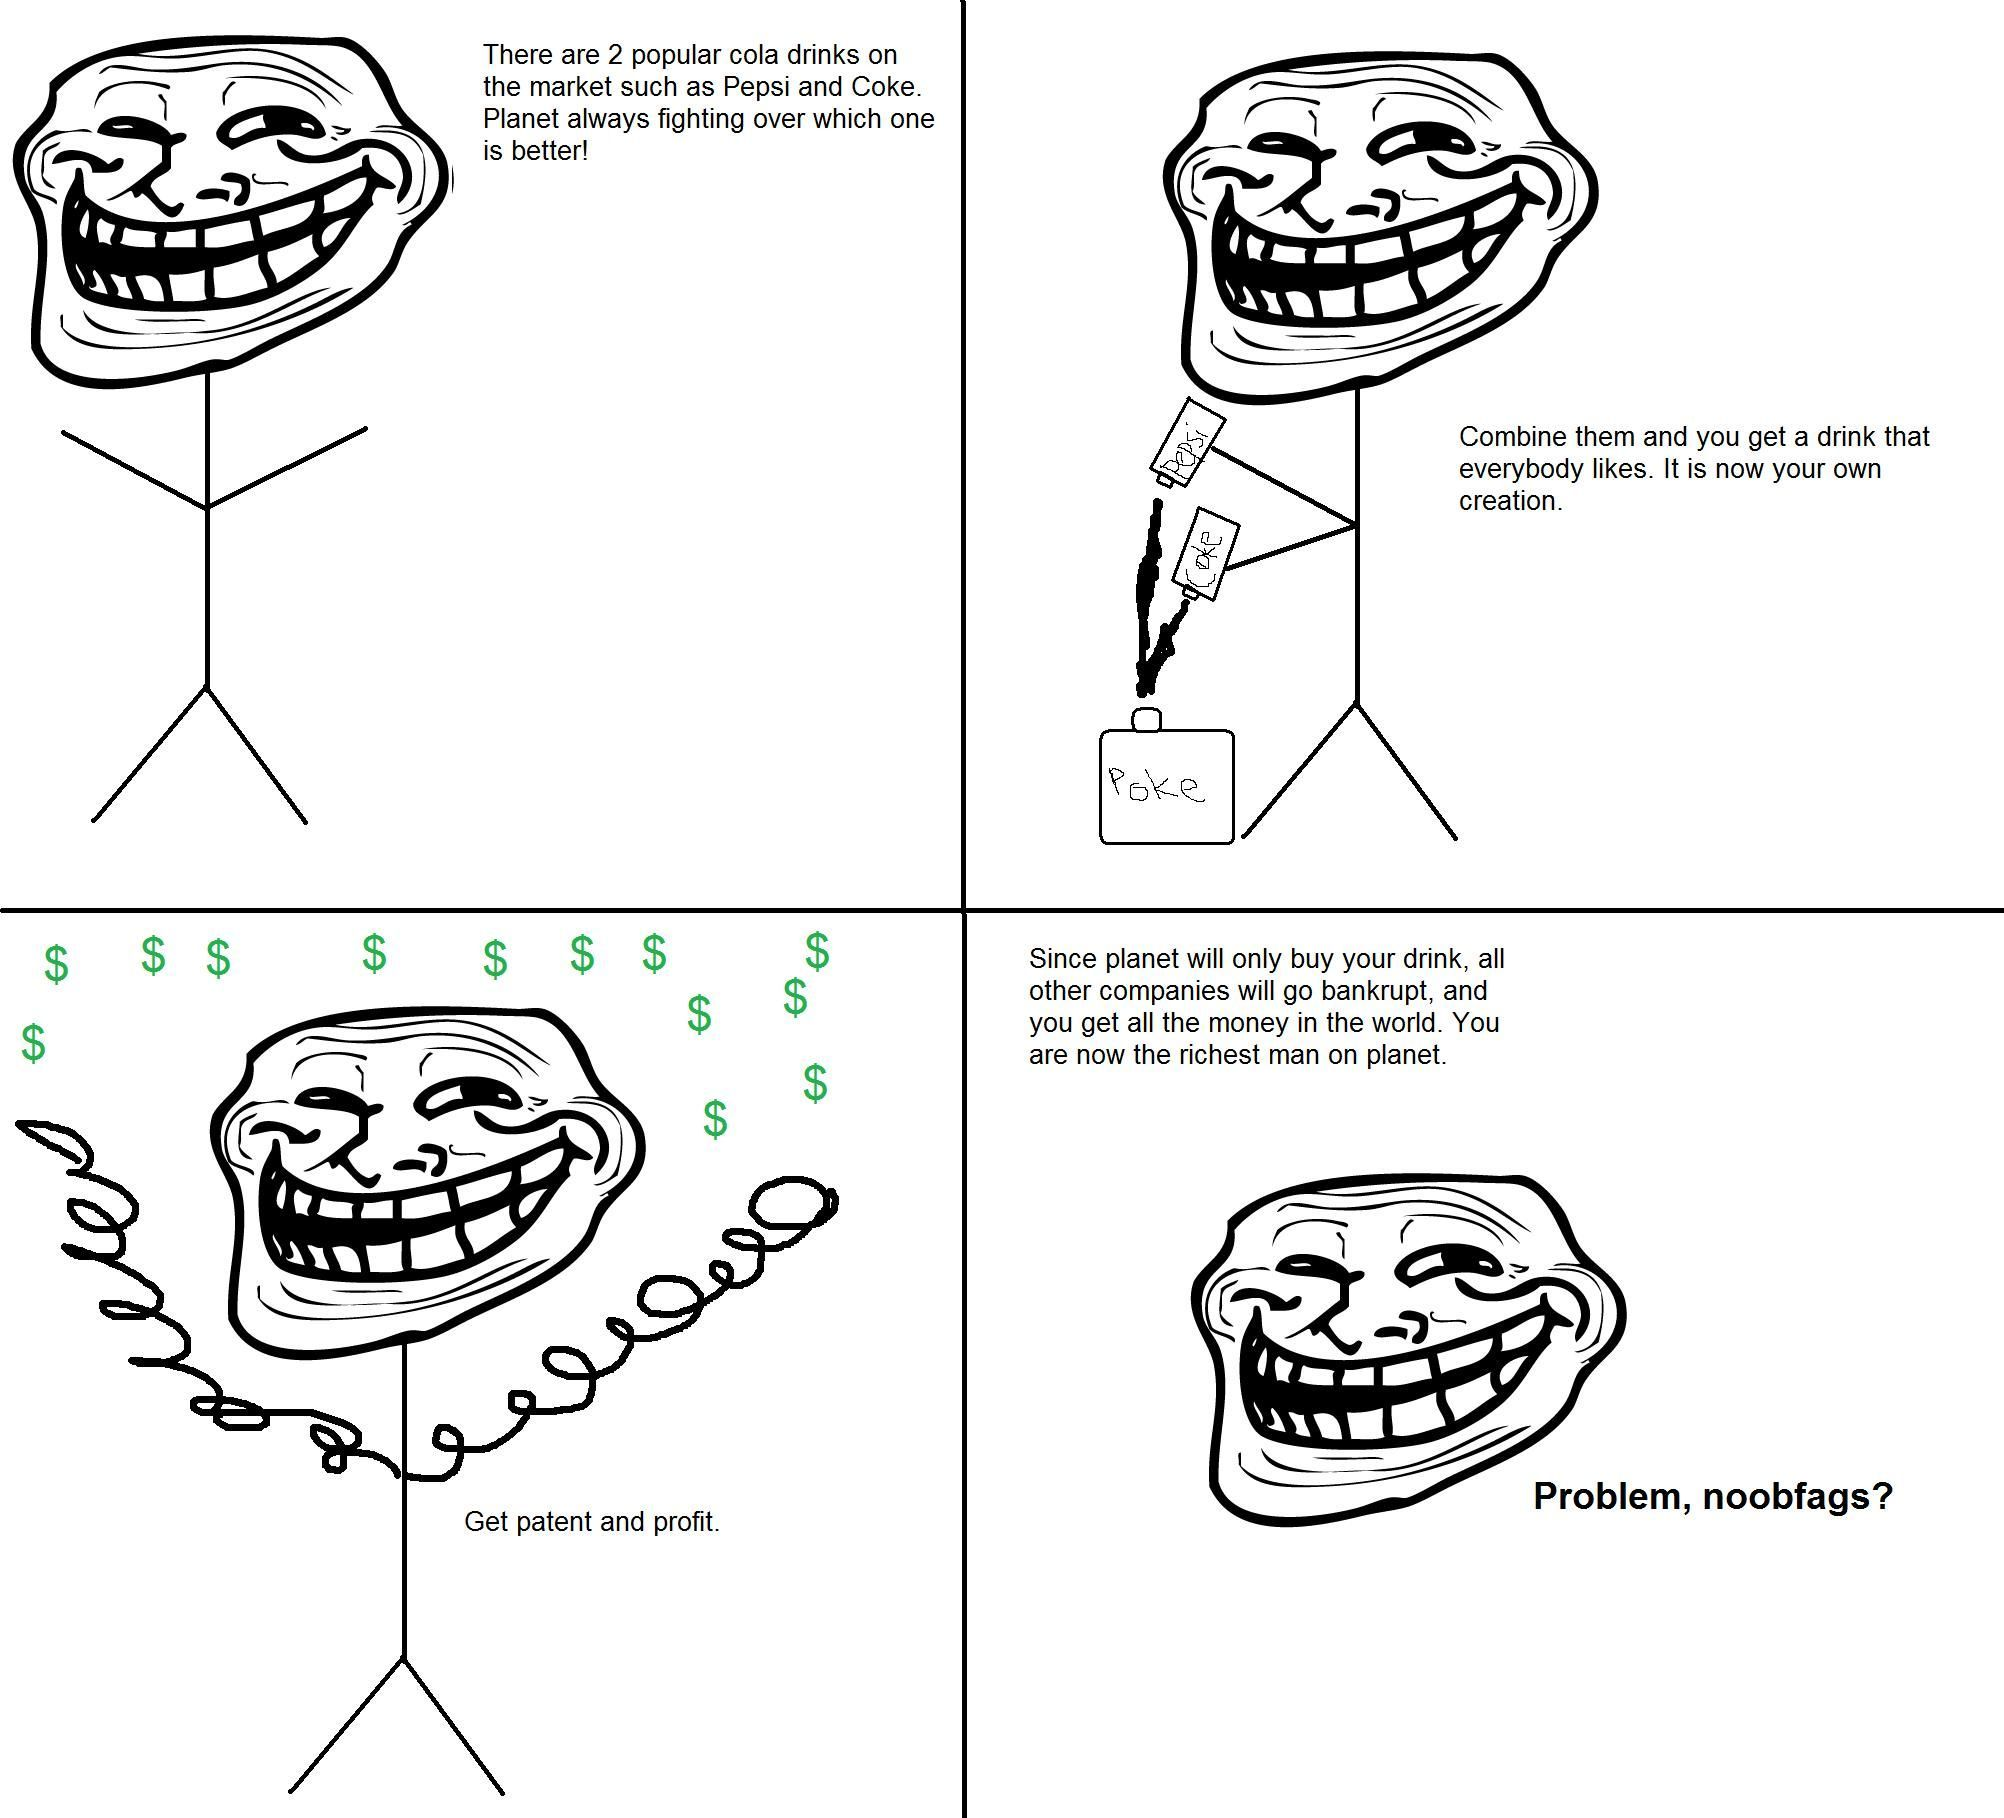 trollface image 89851] troll science troll physics know your meme